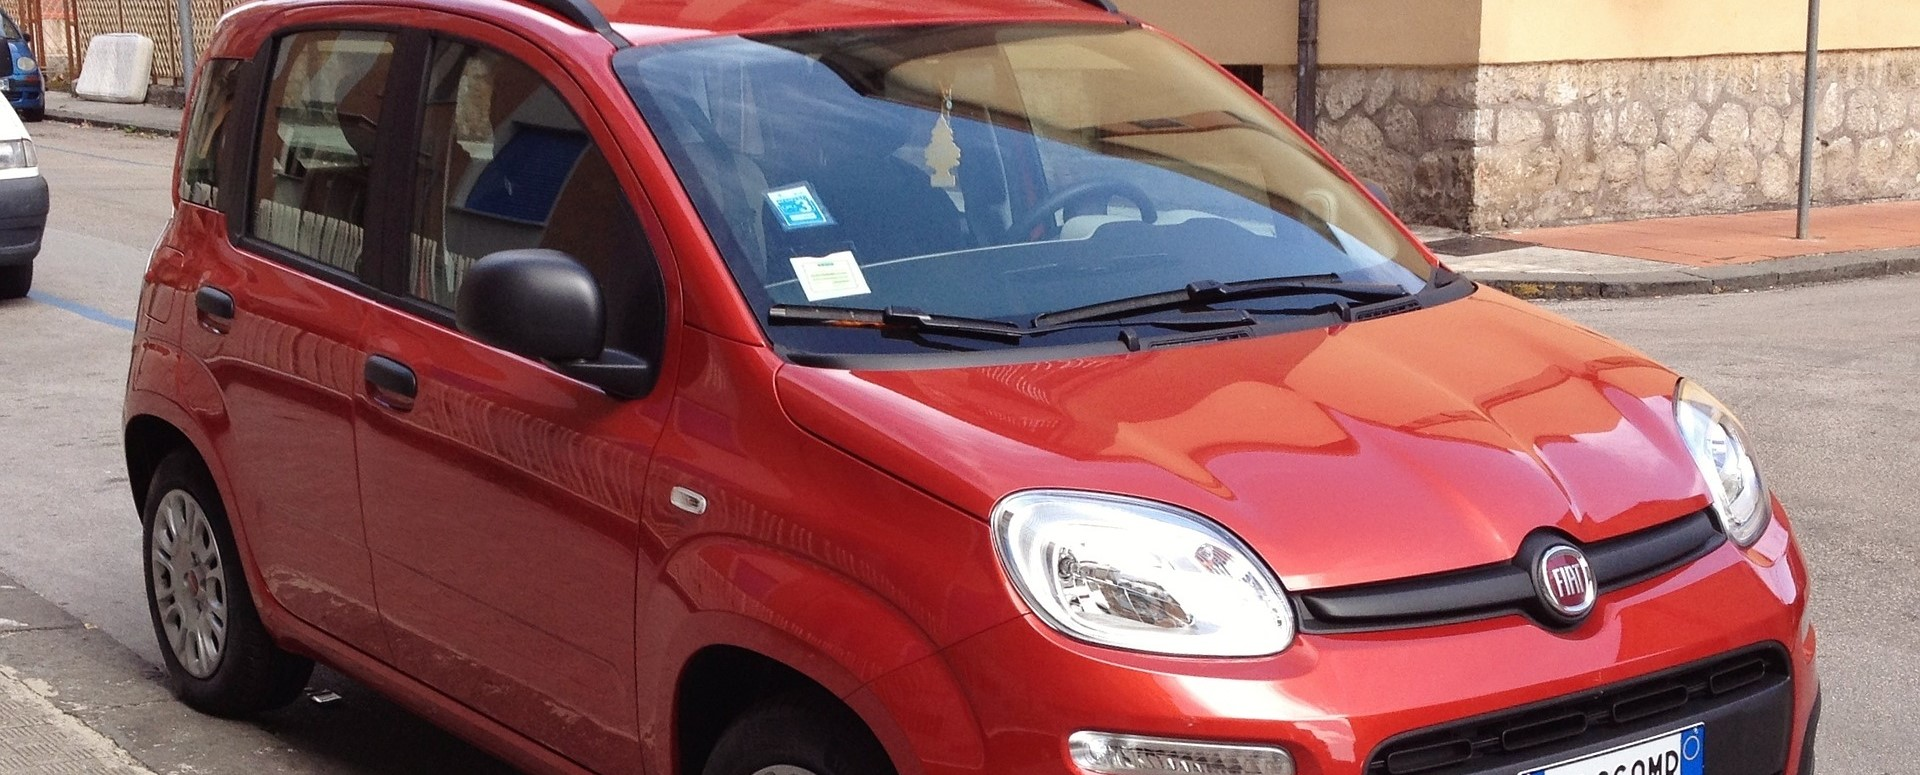 Red Fiat in Henderson, Nevada | Breast Cancer Car Donations